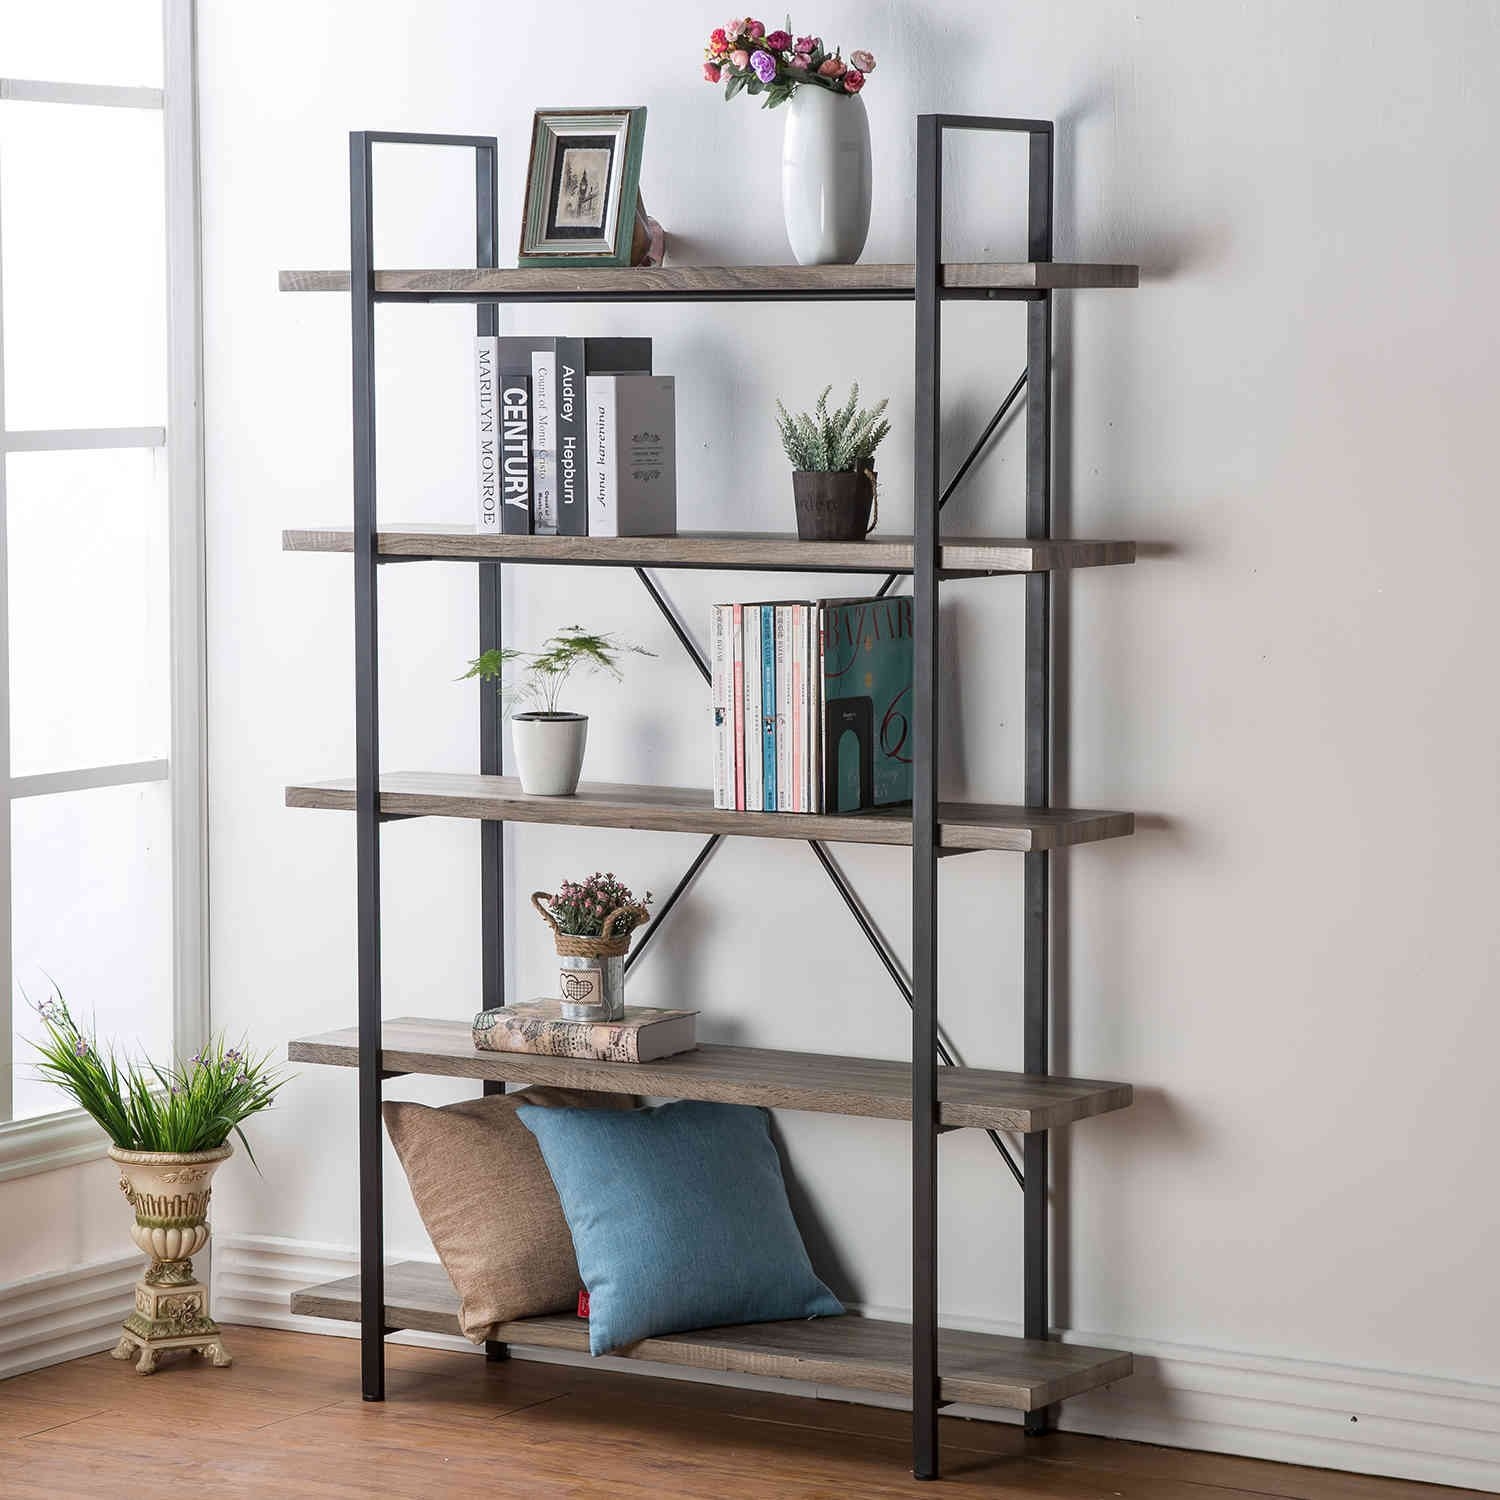 HSH Furniture 5-Shelf Vintage Industrial Rustic Bookshelf, Wood and Metal Bookcase, Open Etagere Book Shelf, Dark Oak by HSH Furniture